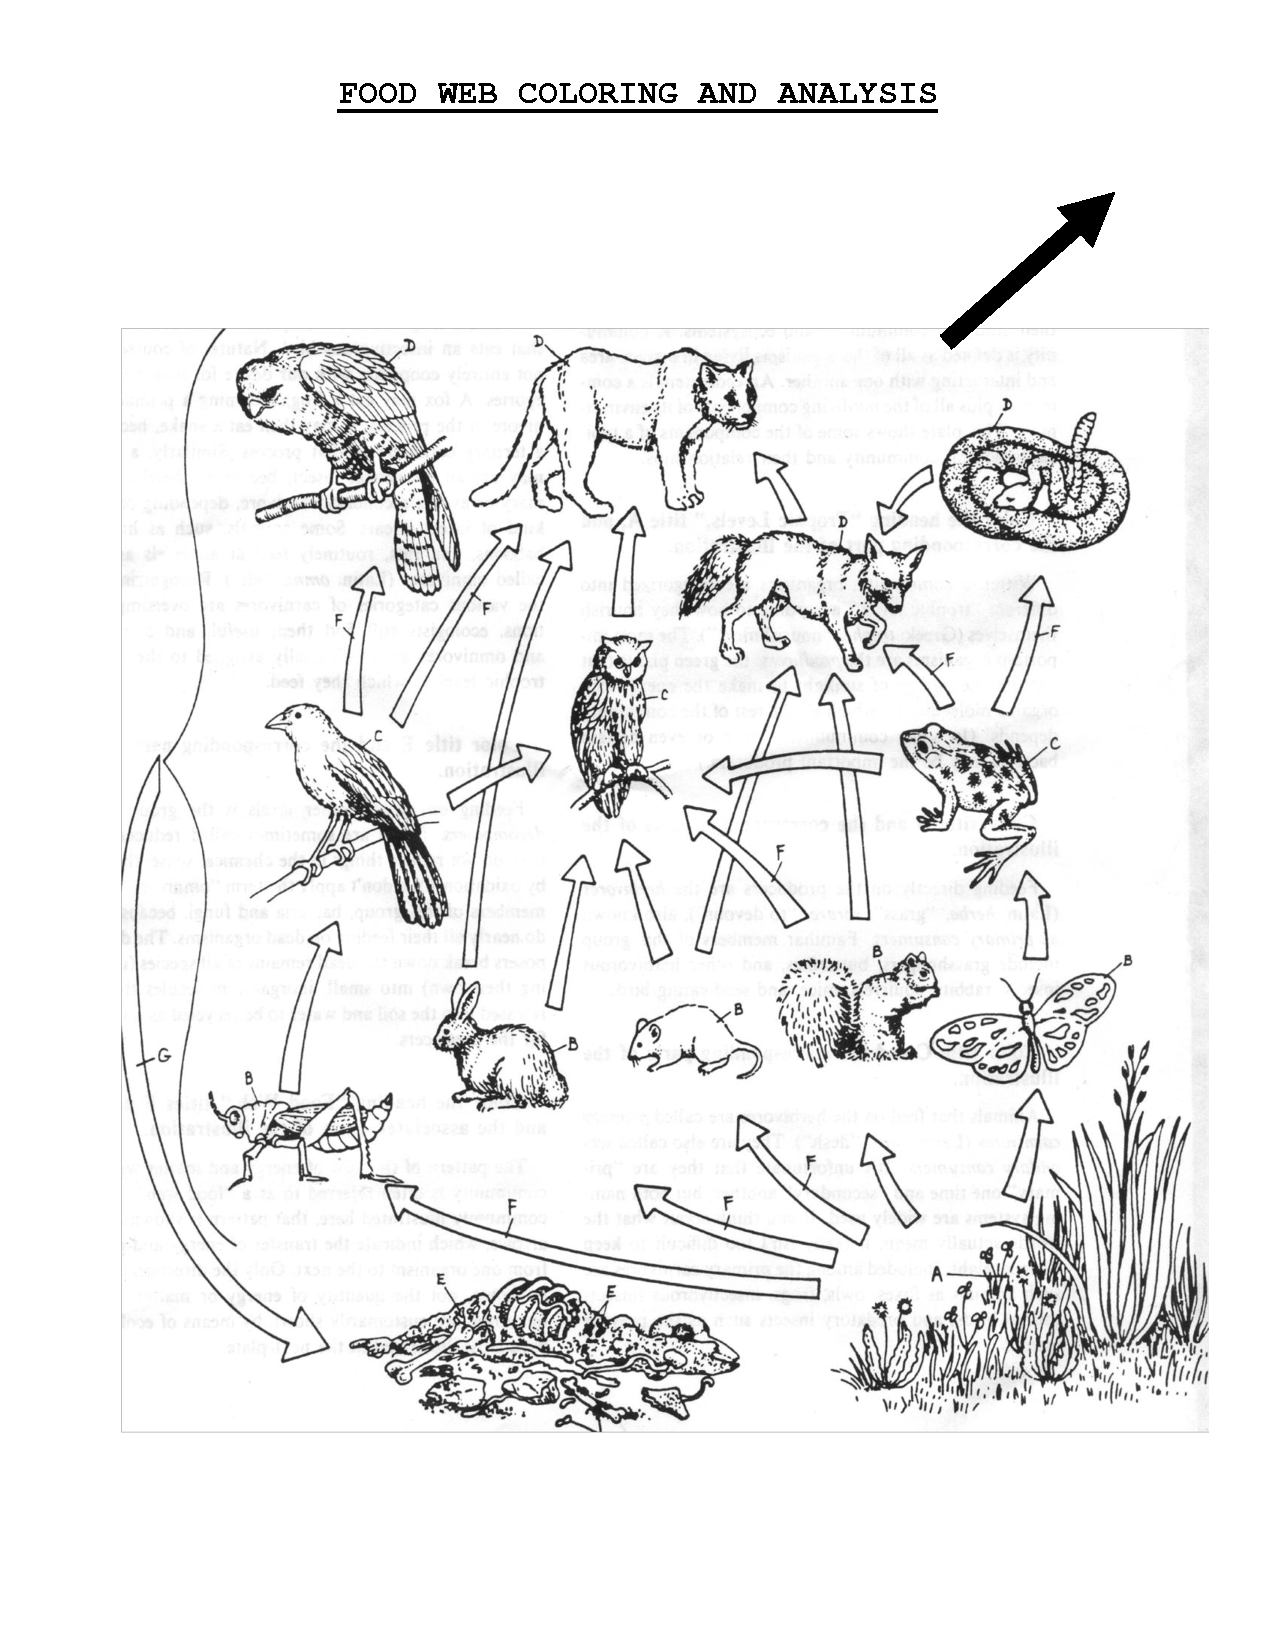 Environmental coloring activities - Food Web Coloring Sheet Scope Of Work Template Activities